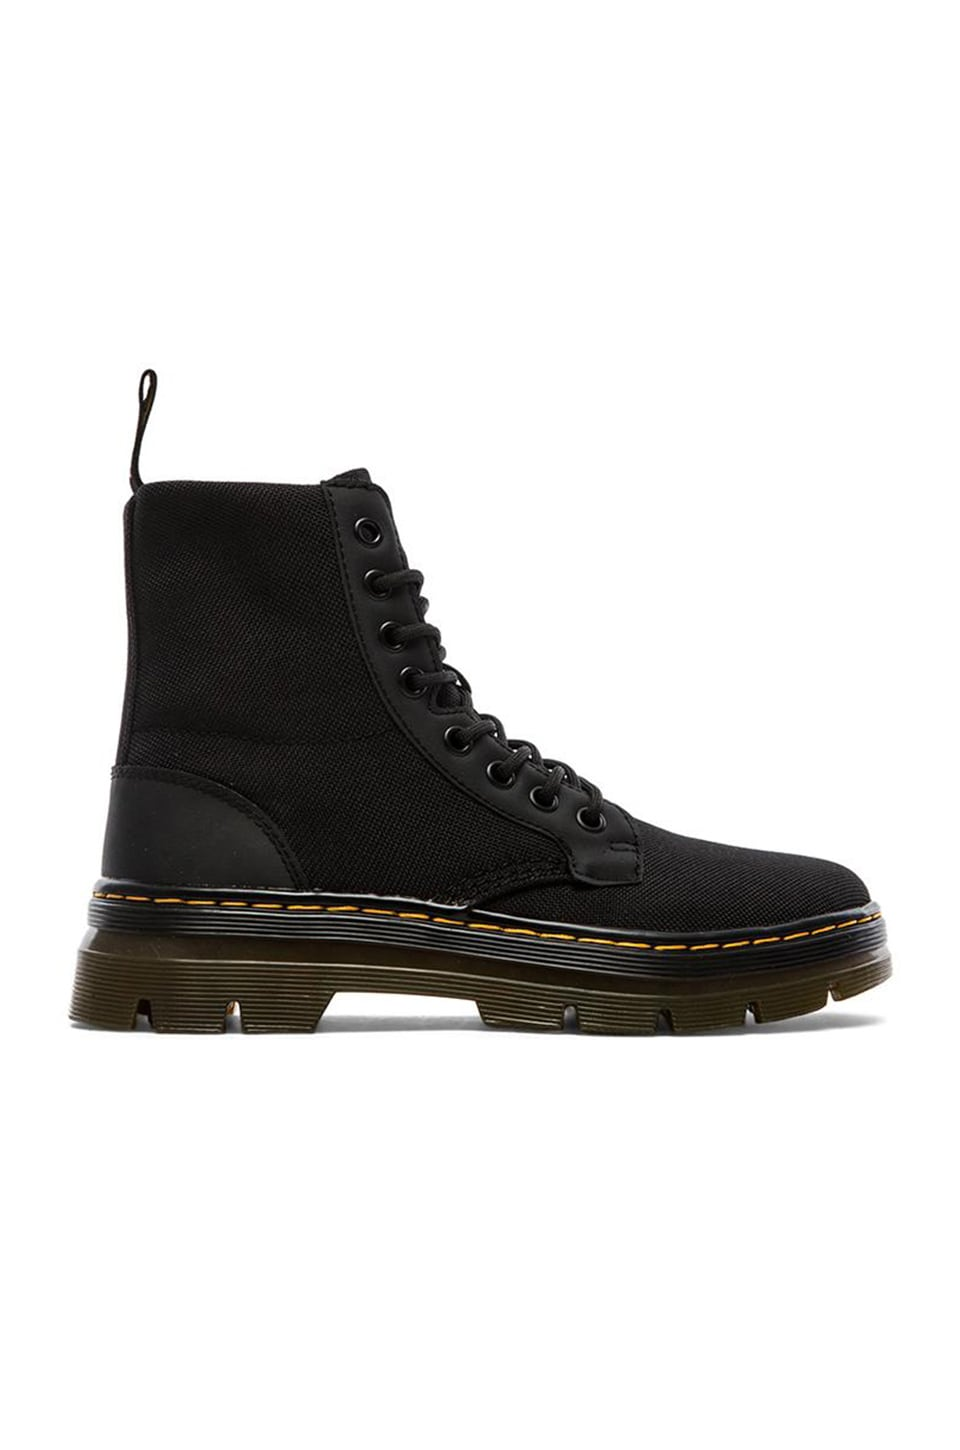 Dr. Martens Combs Fold Down Boot in Black